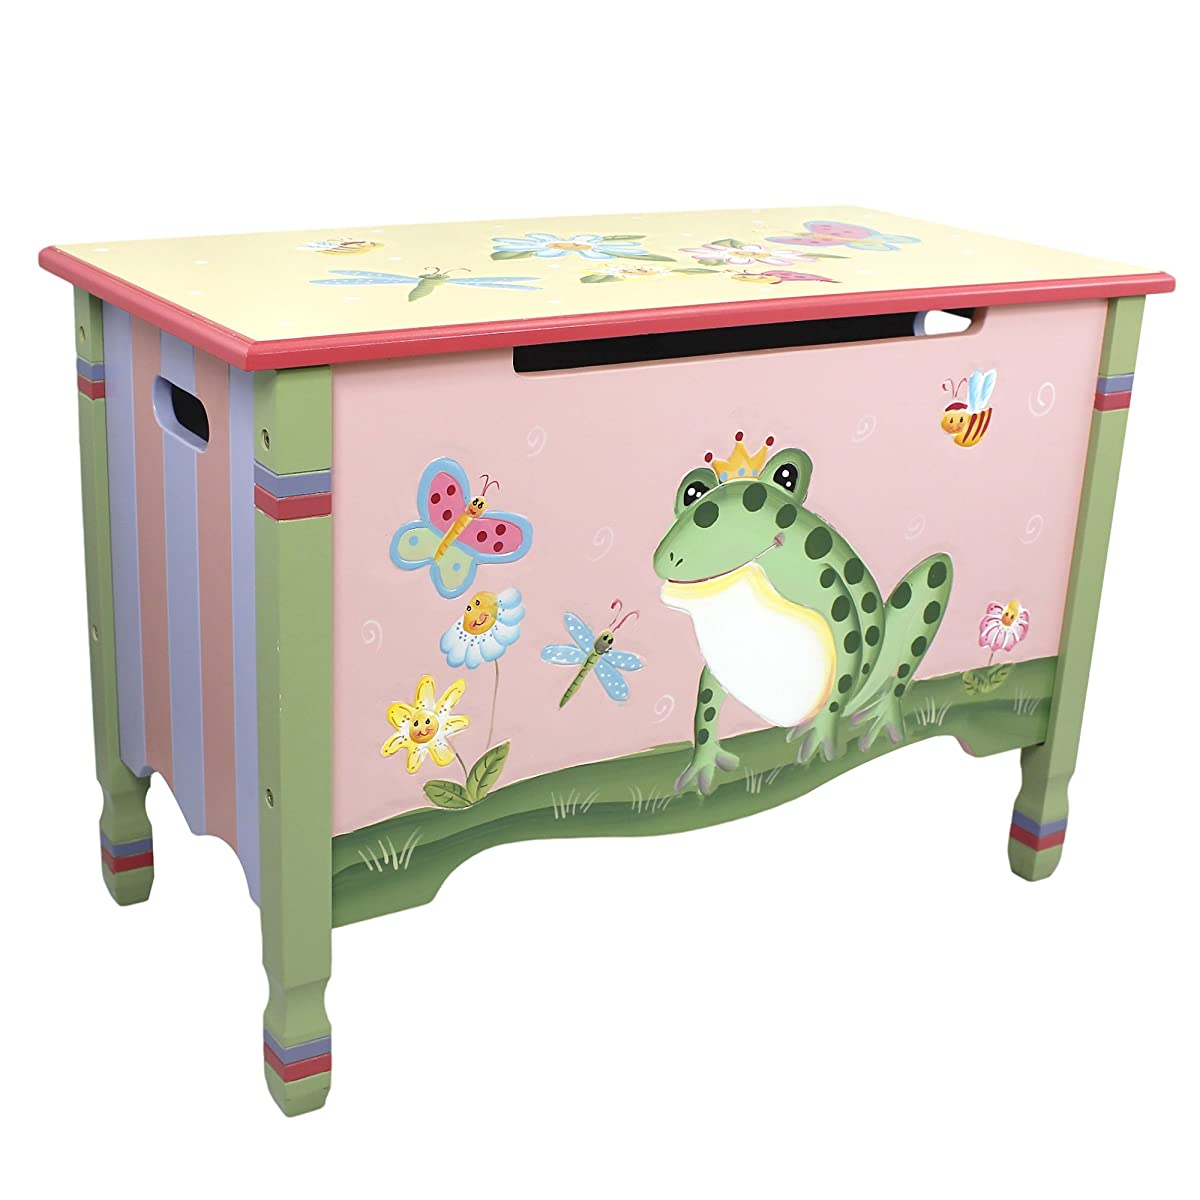 Magic Garden Thematic Kids Wooden Toy Chest with Safety Hinges | Imagination Inspiring Hand Crafted